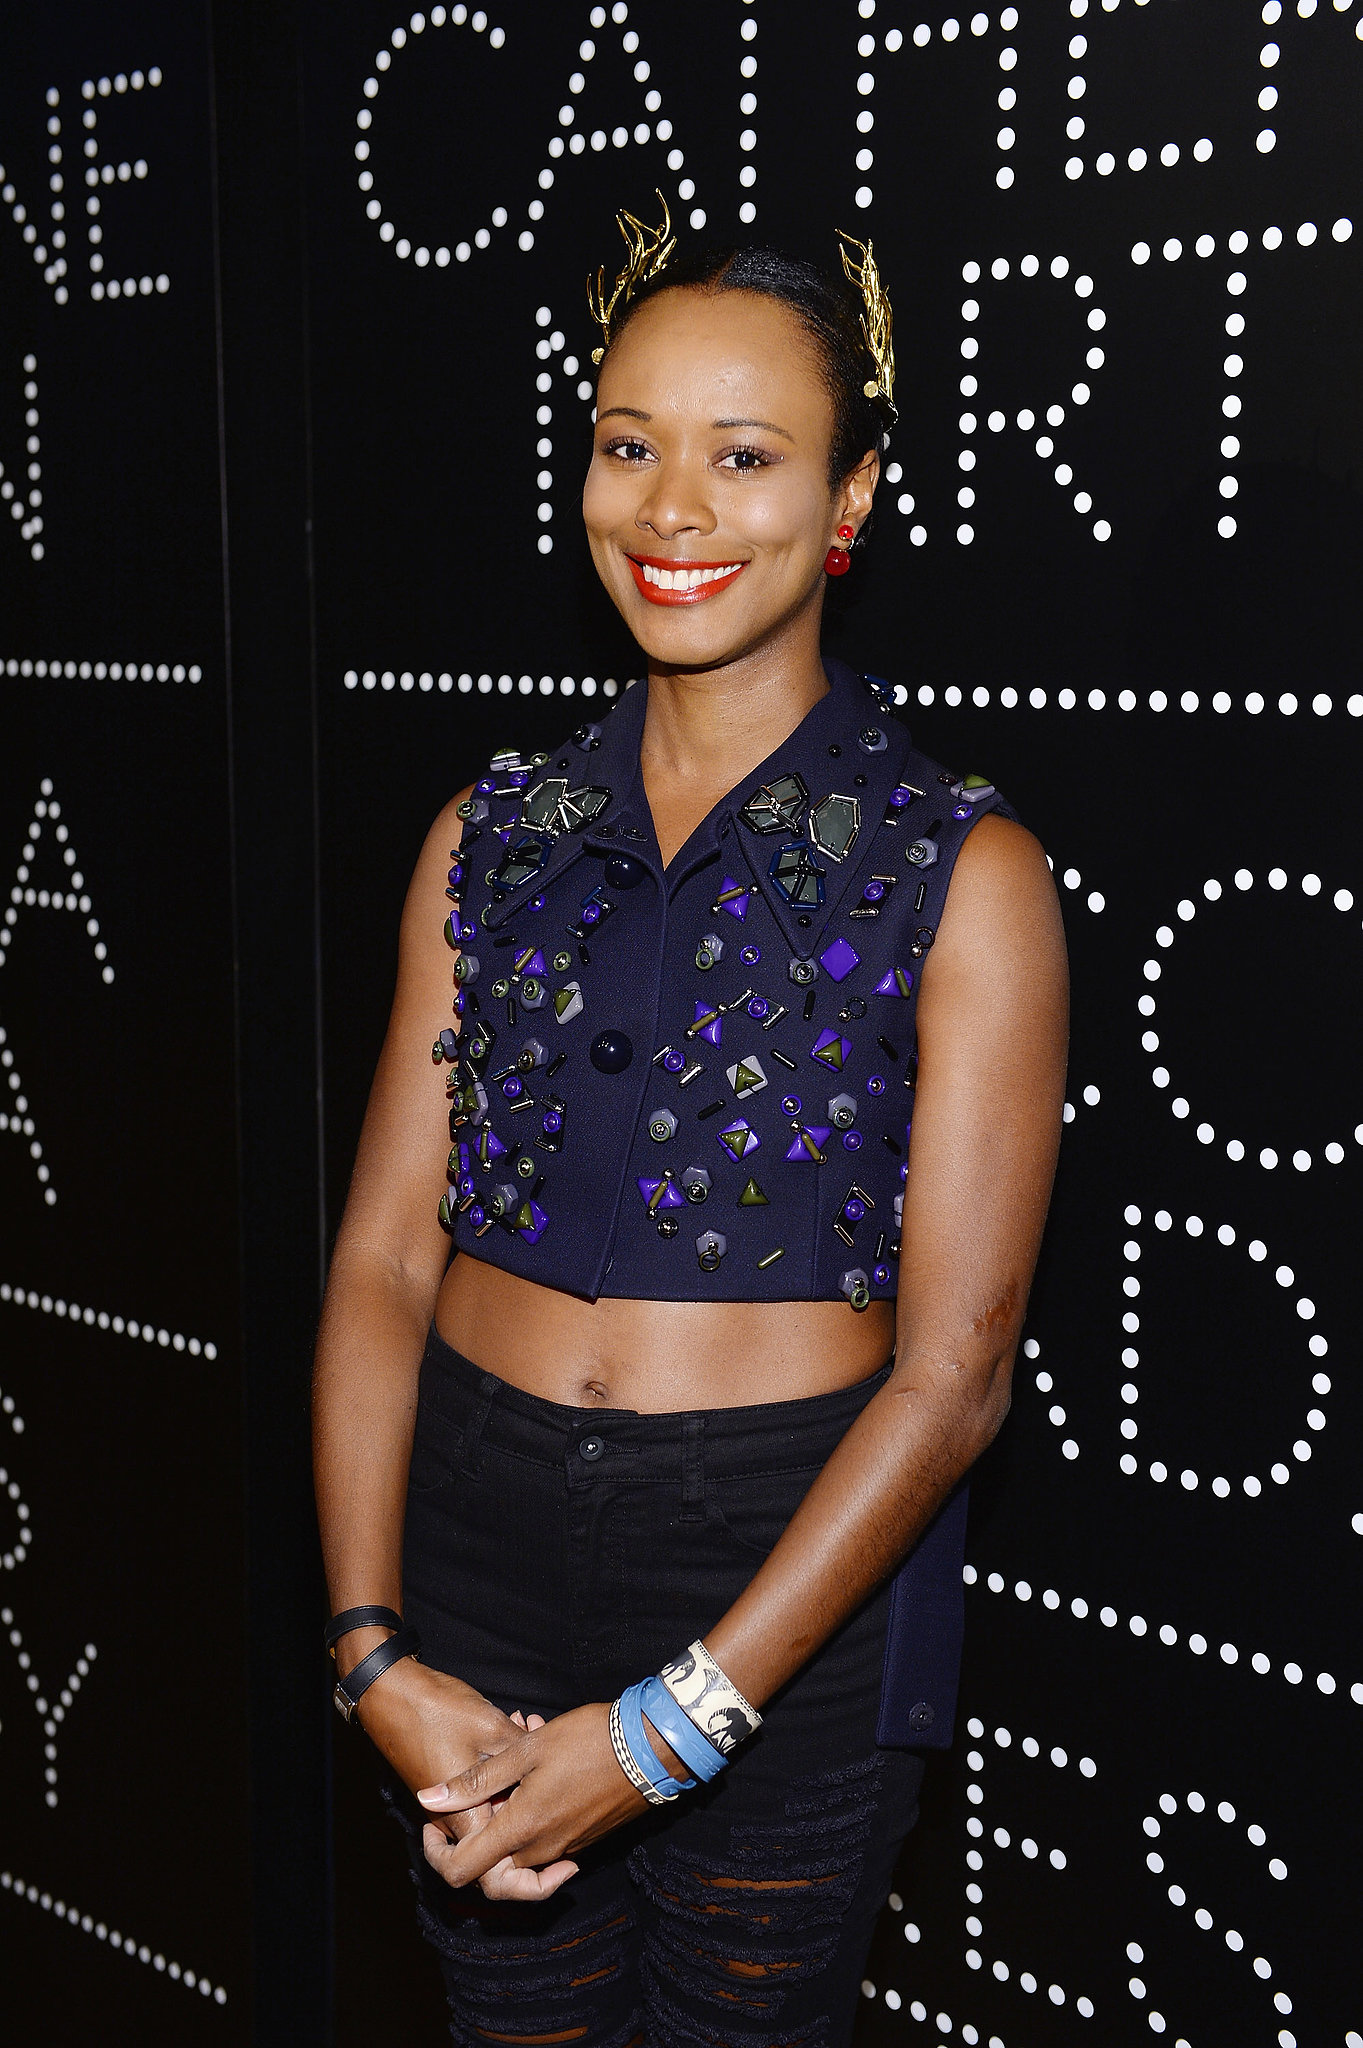 Shala Monroque showed off the season's belly-baring trend in an embellished sleeveless top paired with ripped jeans, a quirky gold headpiece, and stacked bracelets at the Prada and The Great Gatsby cocktail party.